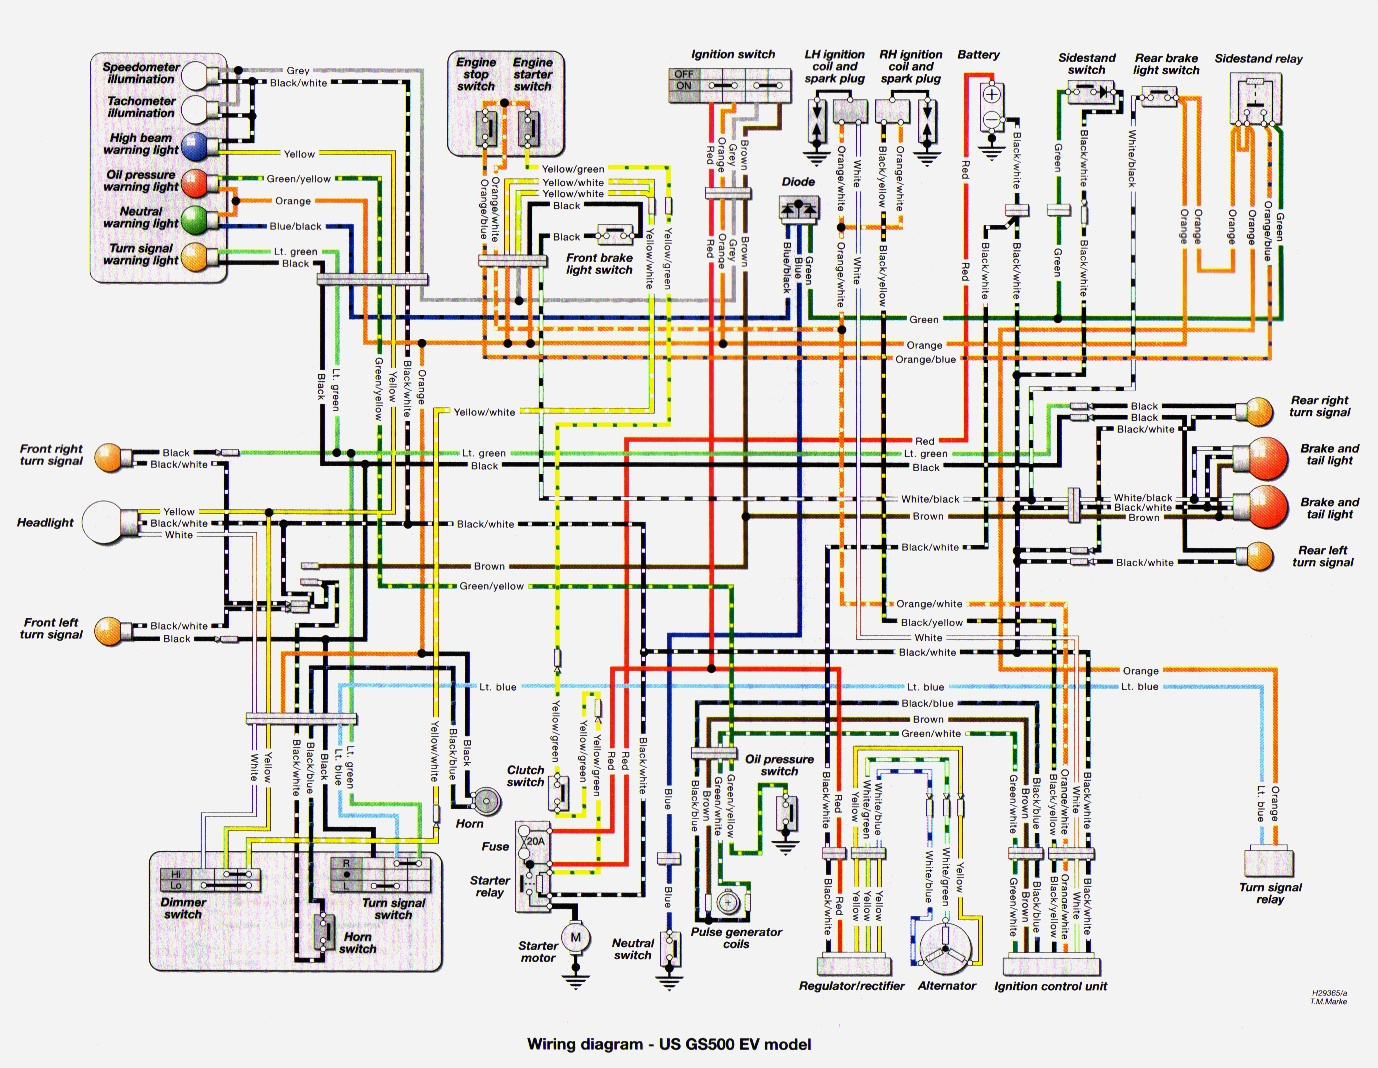 Haynes_WiringDiagram_US_97 suzuki gs500 wiring diagram 95 suzuki gs500f wiring diagram \u2022 free Basic Electrical Wiring Diagrams at aneh.co